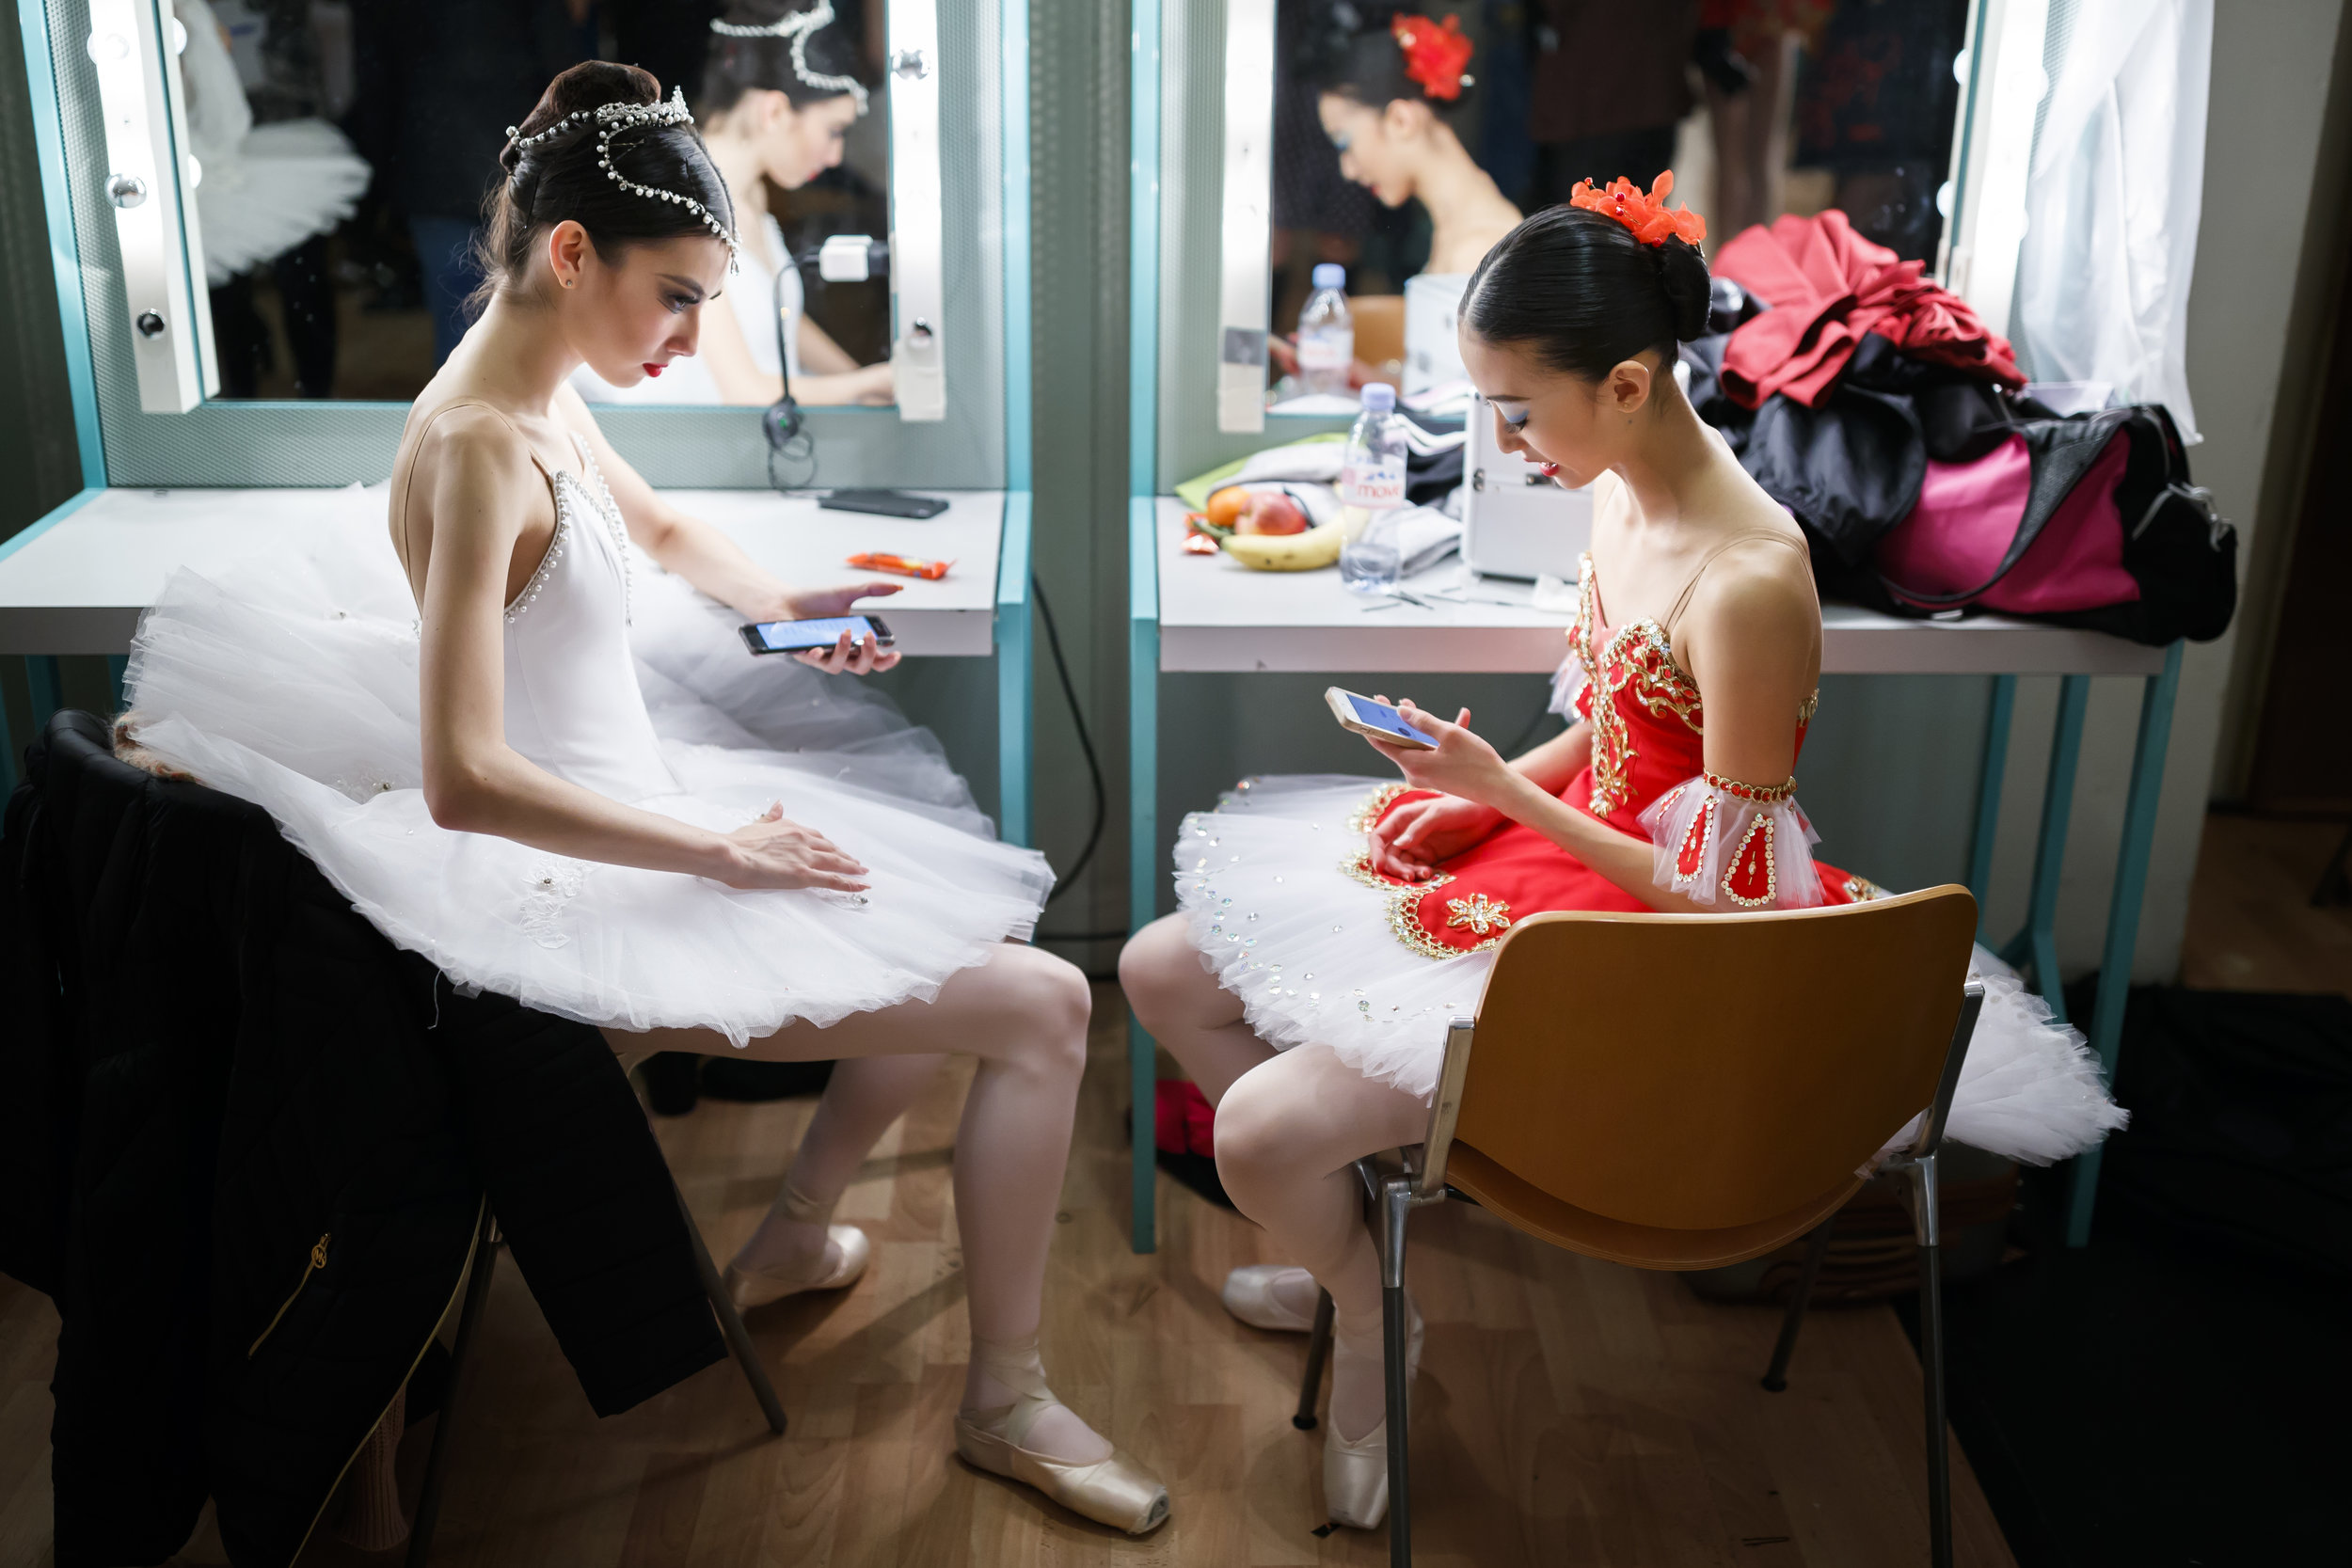 Dancers use their mobile phones backstage as they wait for their final results after the final of the 46th Prix de Lausanne in Lausanne, Switzerland, Saturday, February 3, 2018. Launched in 1973, the Prix de Lausanne is an international dance competition for young dancers aged 15 to 18. Closing the six-day event, prizes are awarded to the best of 21 finalists consisting of scholarships granting free tuition in a world-renowned dance school or dance company. (KEYSTONE/Valentin Flauraud)